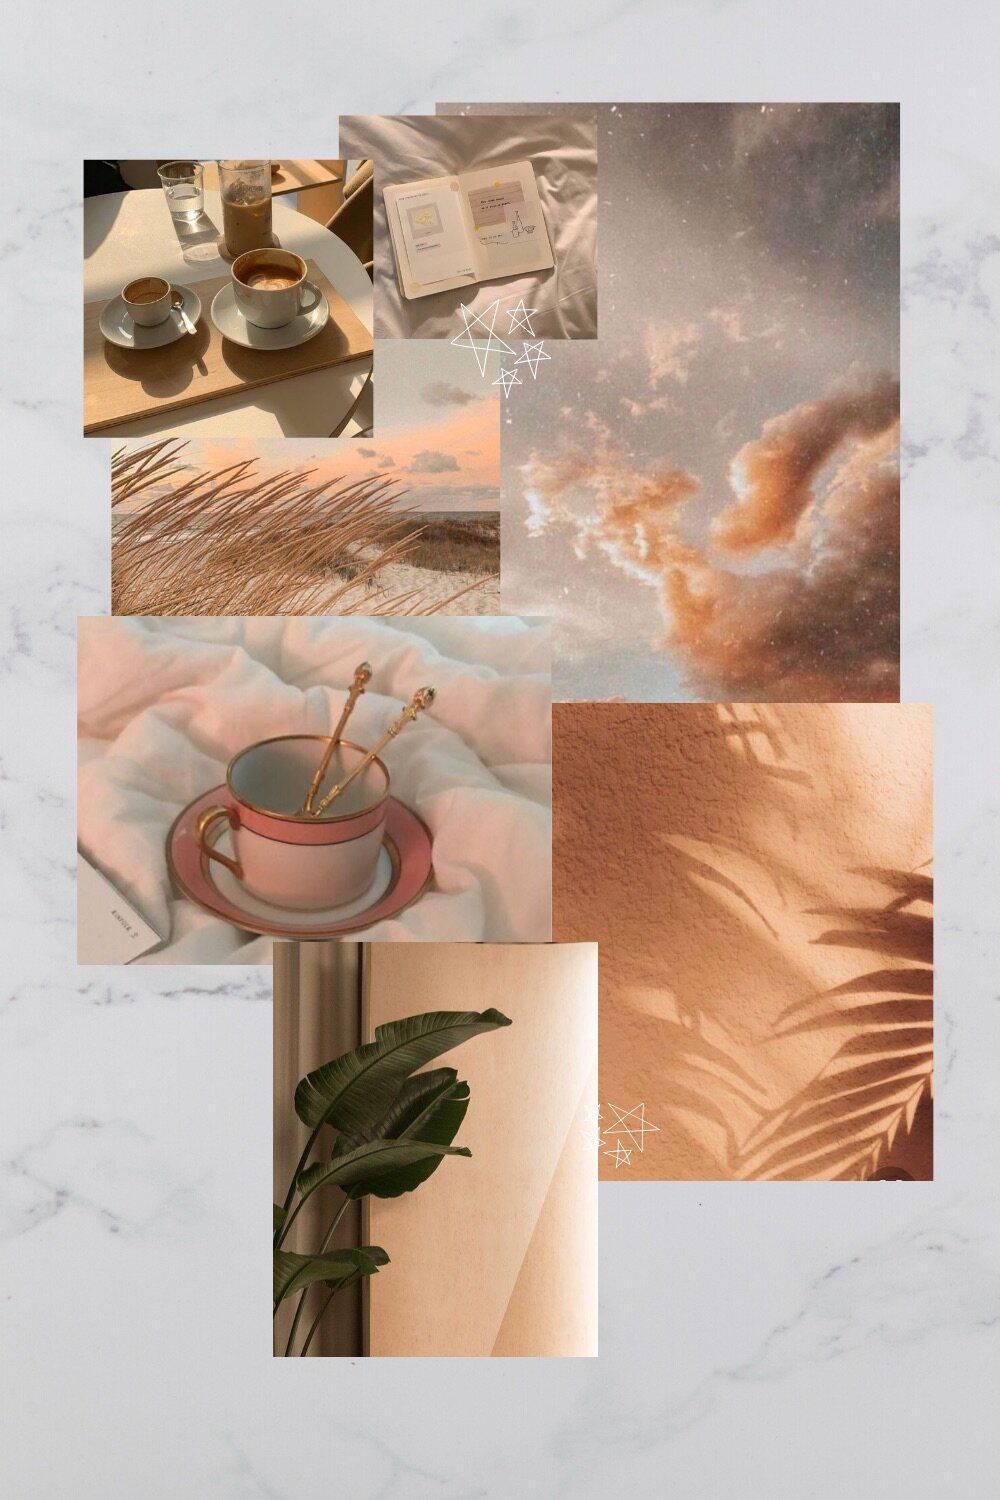 Free Tumblr Inspired Wallpapers For Iphone Oui We In 2020 Iphone Wallpaper Tumblr Aesthetic Aesthetic Iphone Wallpaper Phone Backgrounds Vintage